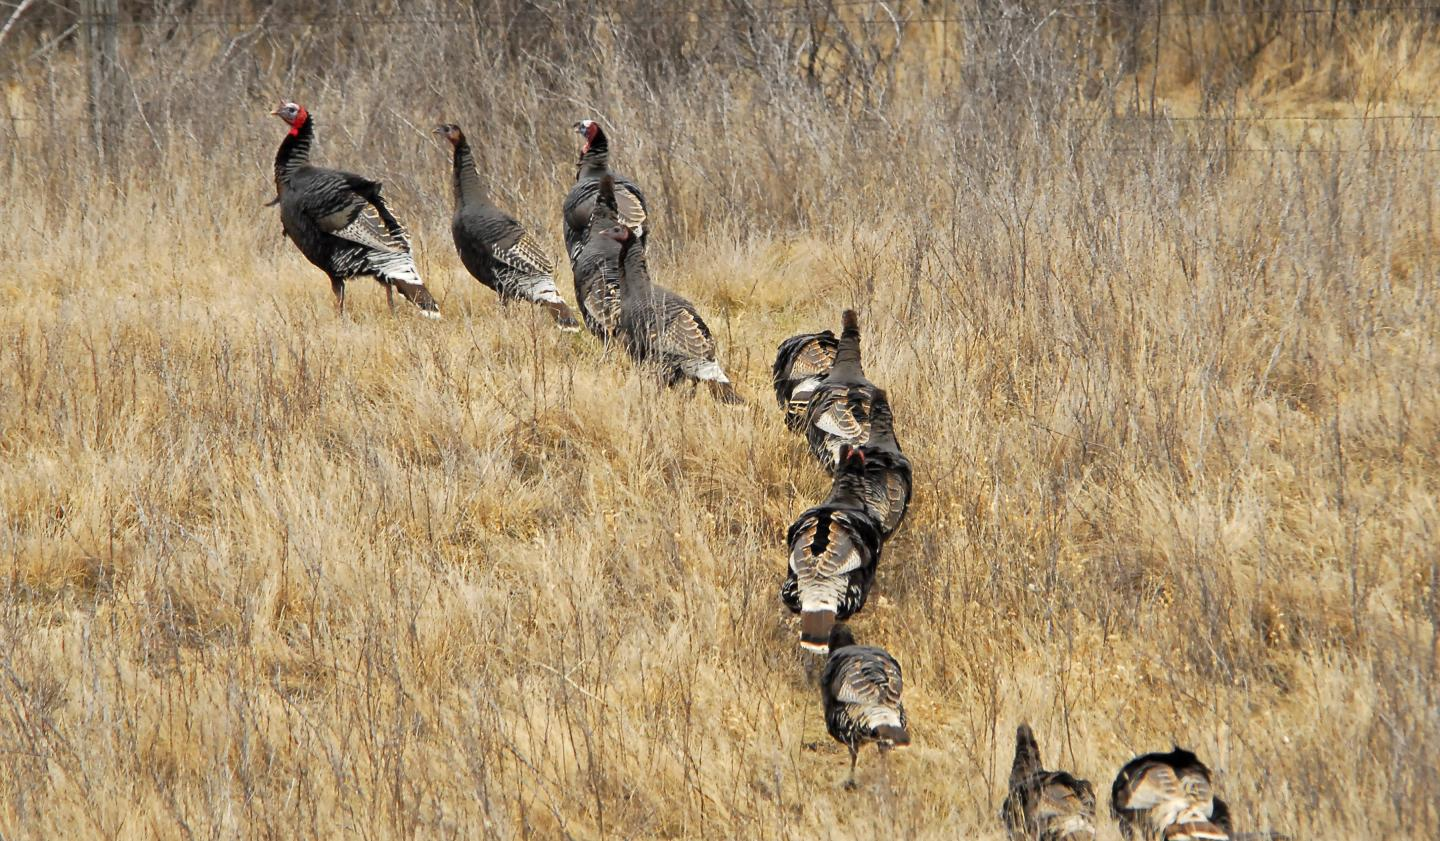 Merriam's wild turkeys